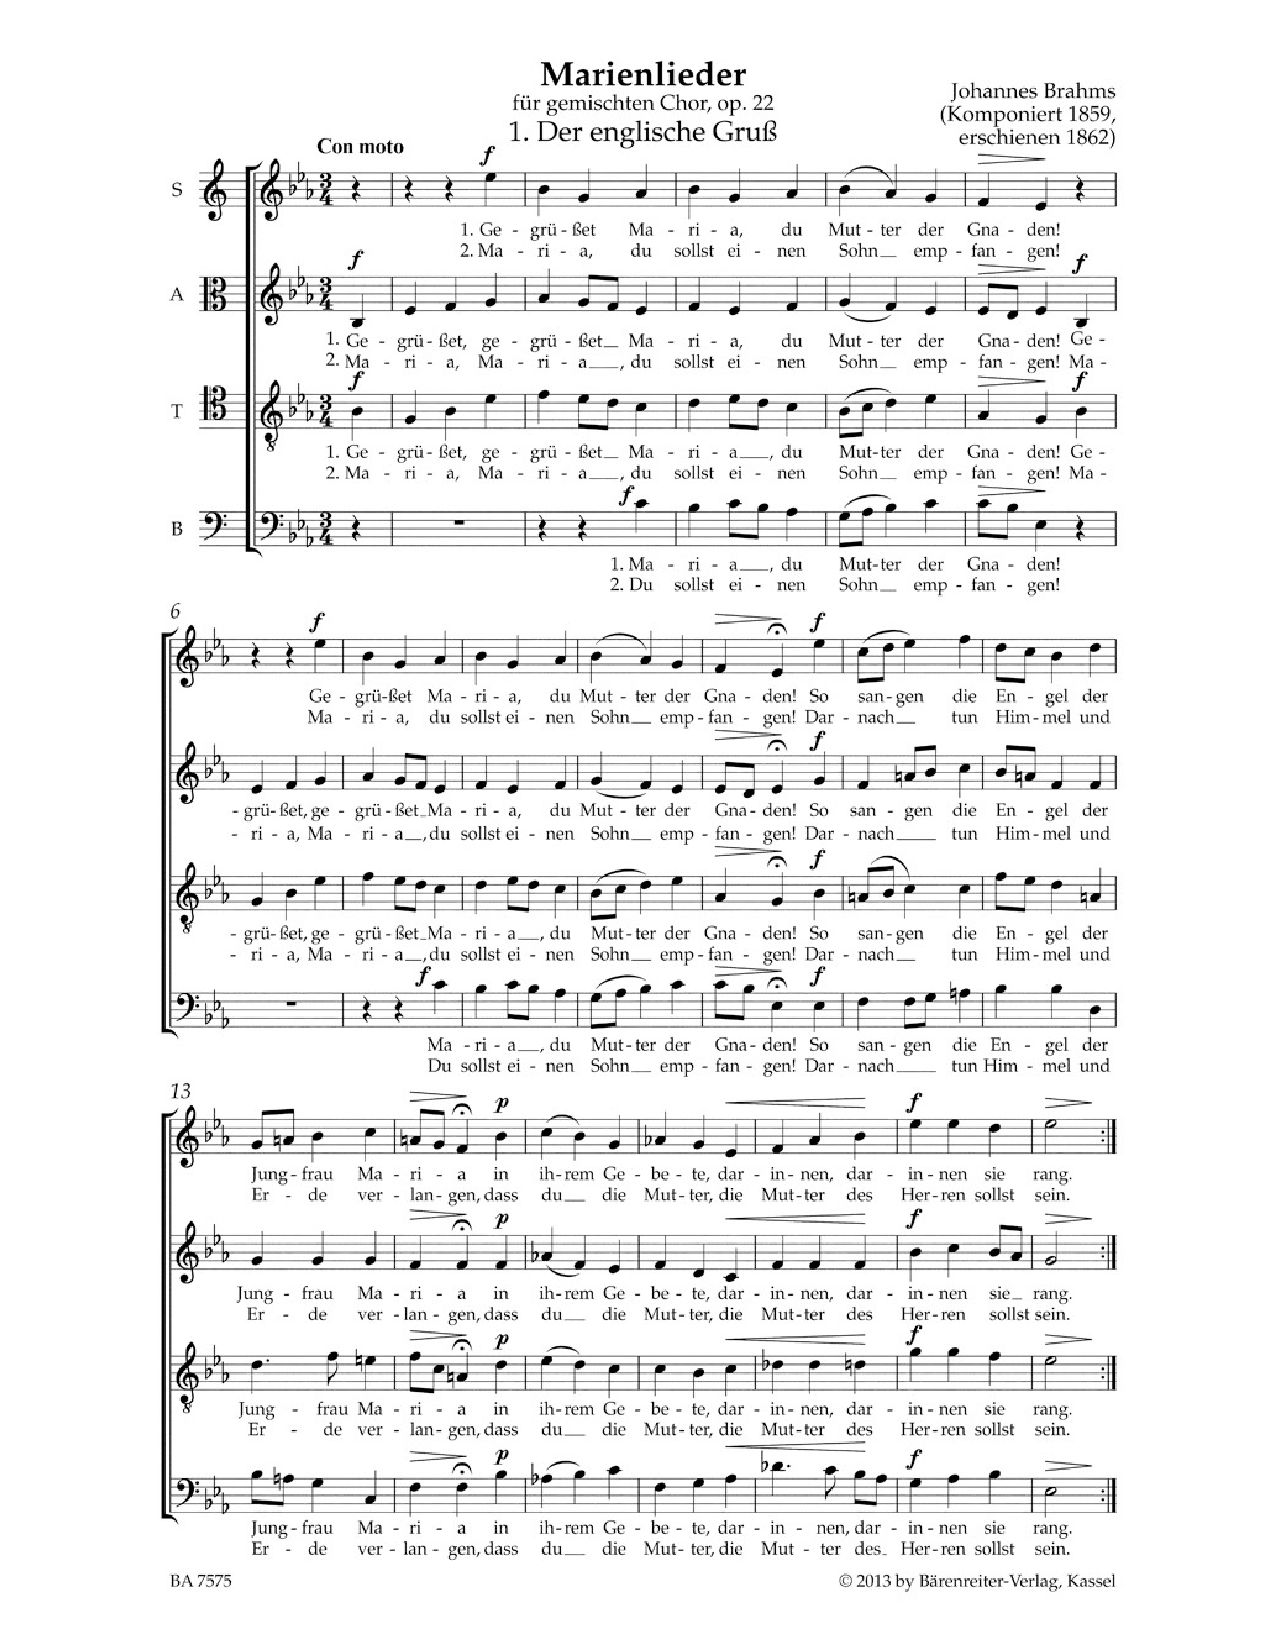 Choral Score Analysis and Preparation